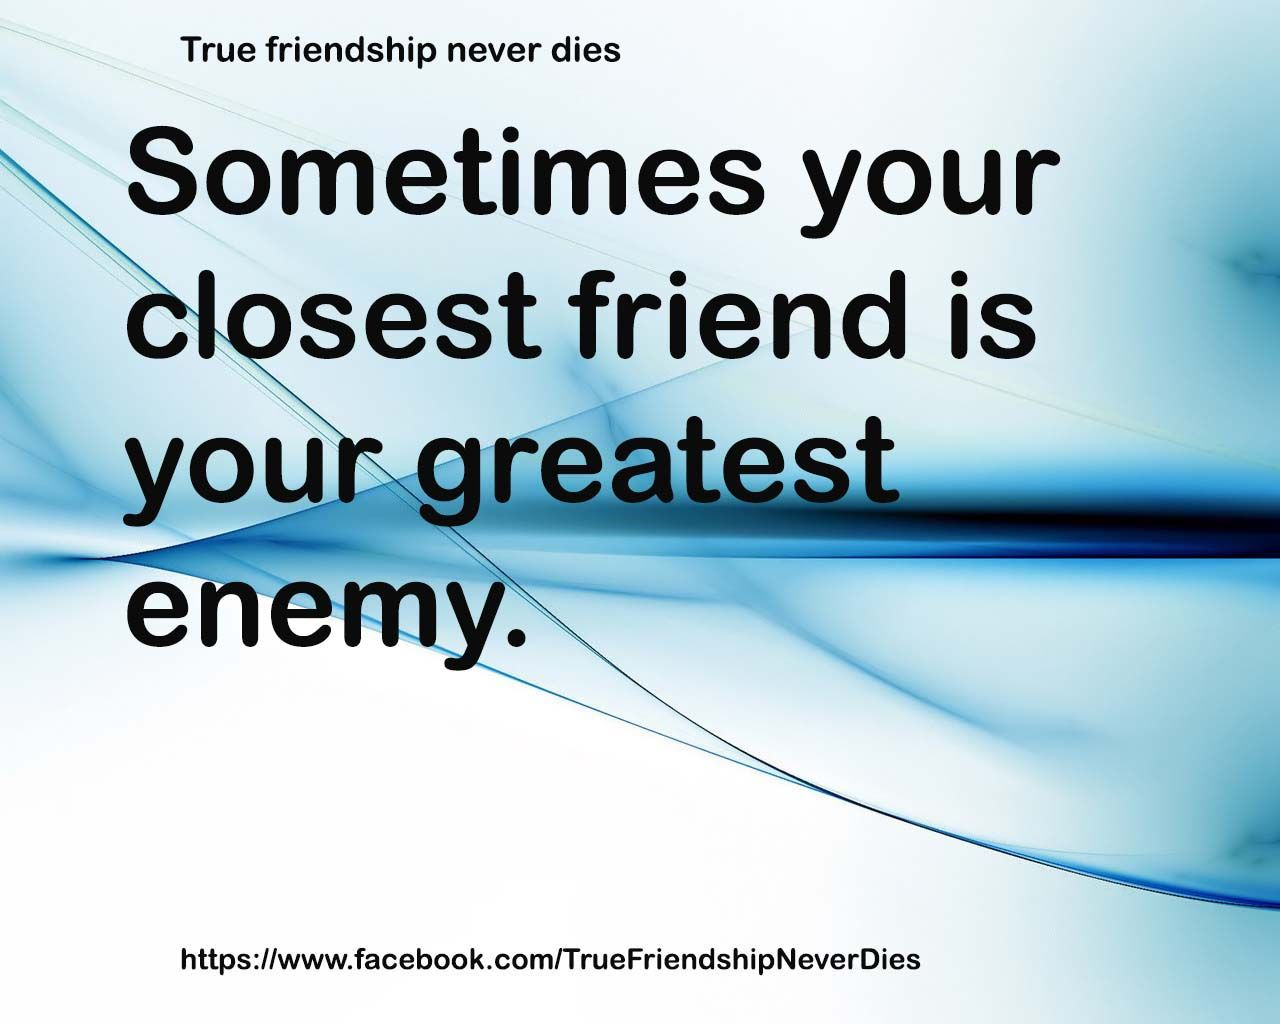 Friendship Quotes And Quotes About Friendship 3 Friendship Quotes Friends Quotes Frienship Quotes